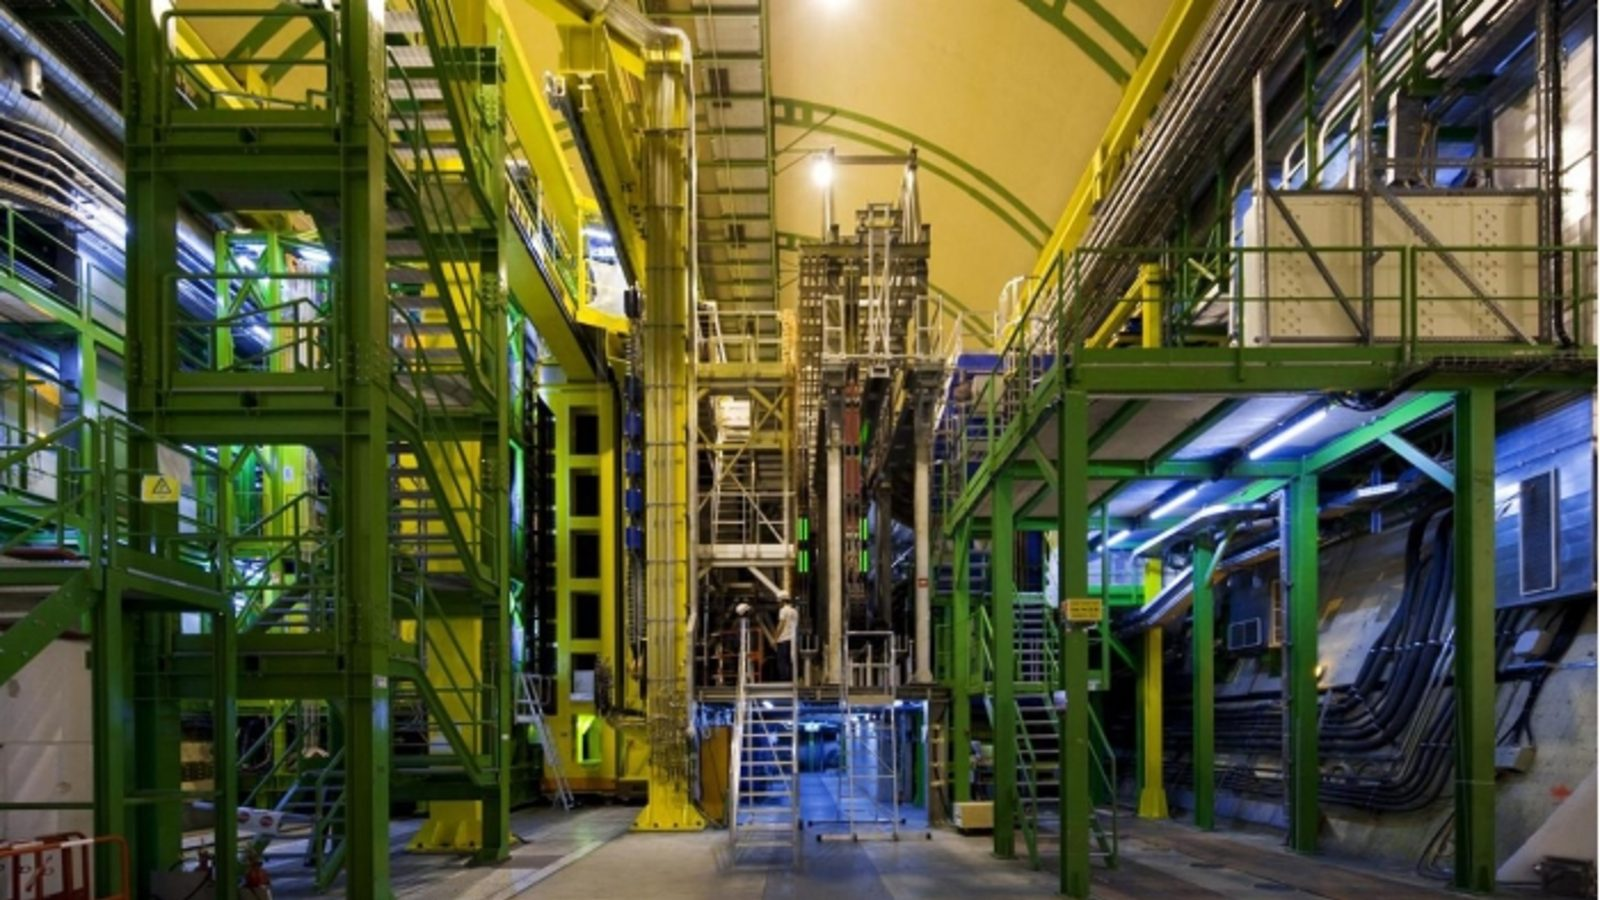 Photo of LHCb-s machinery